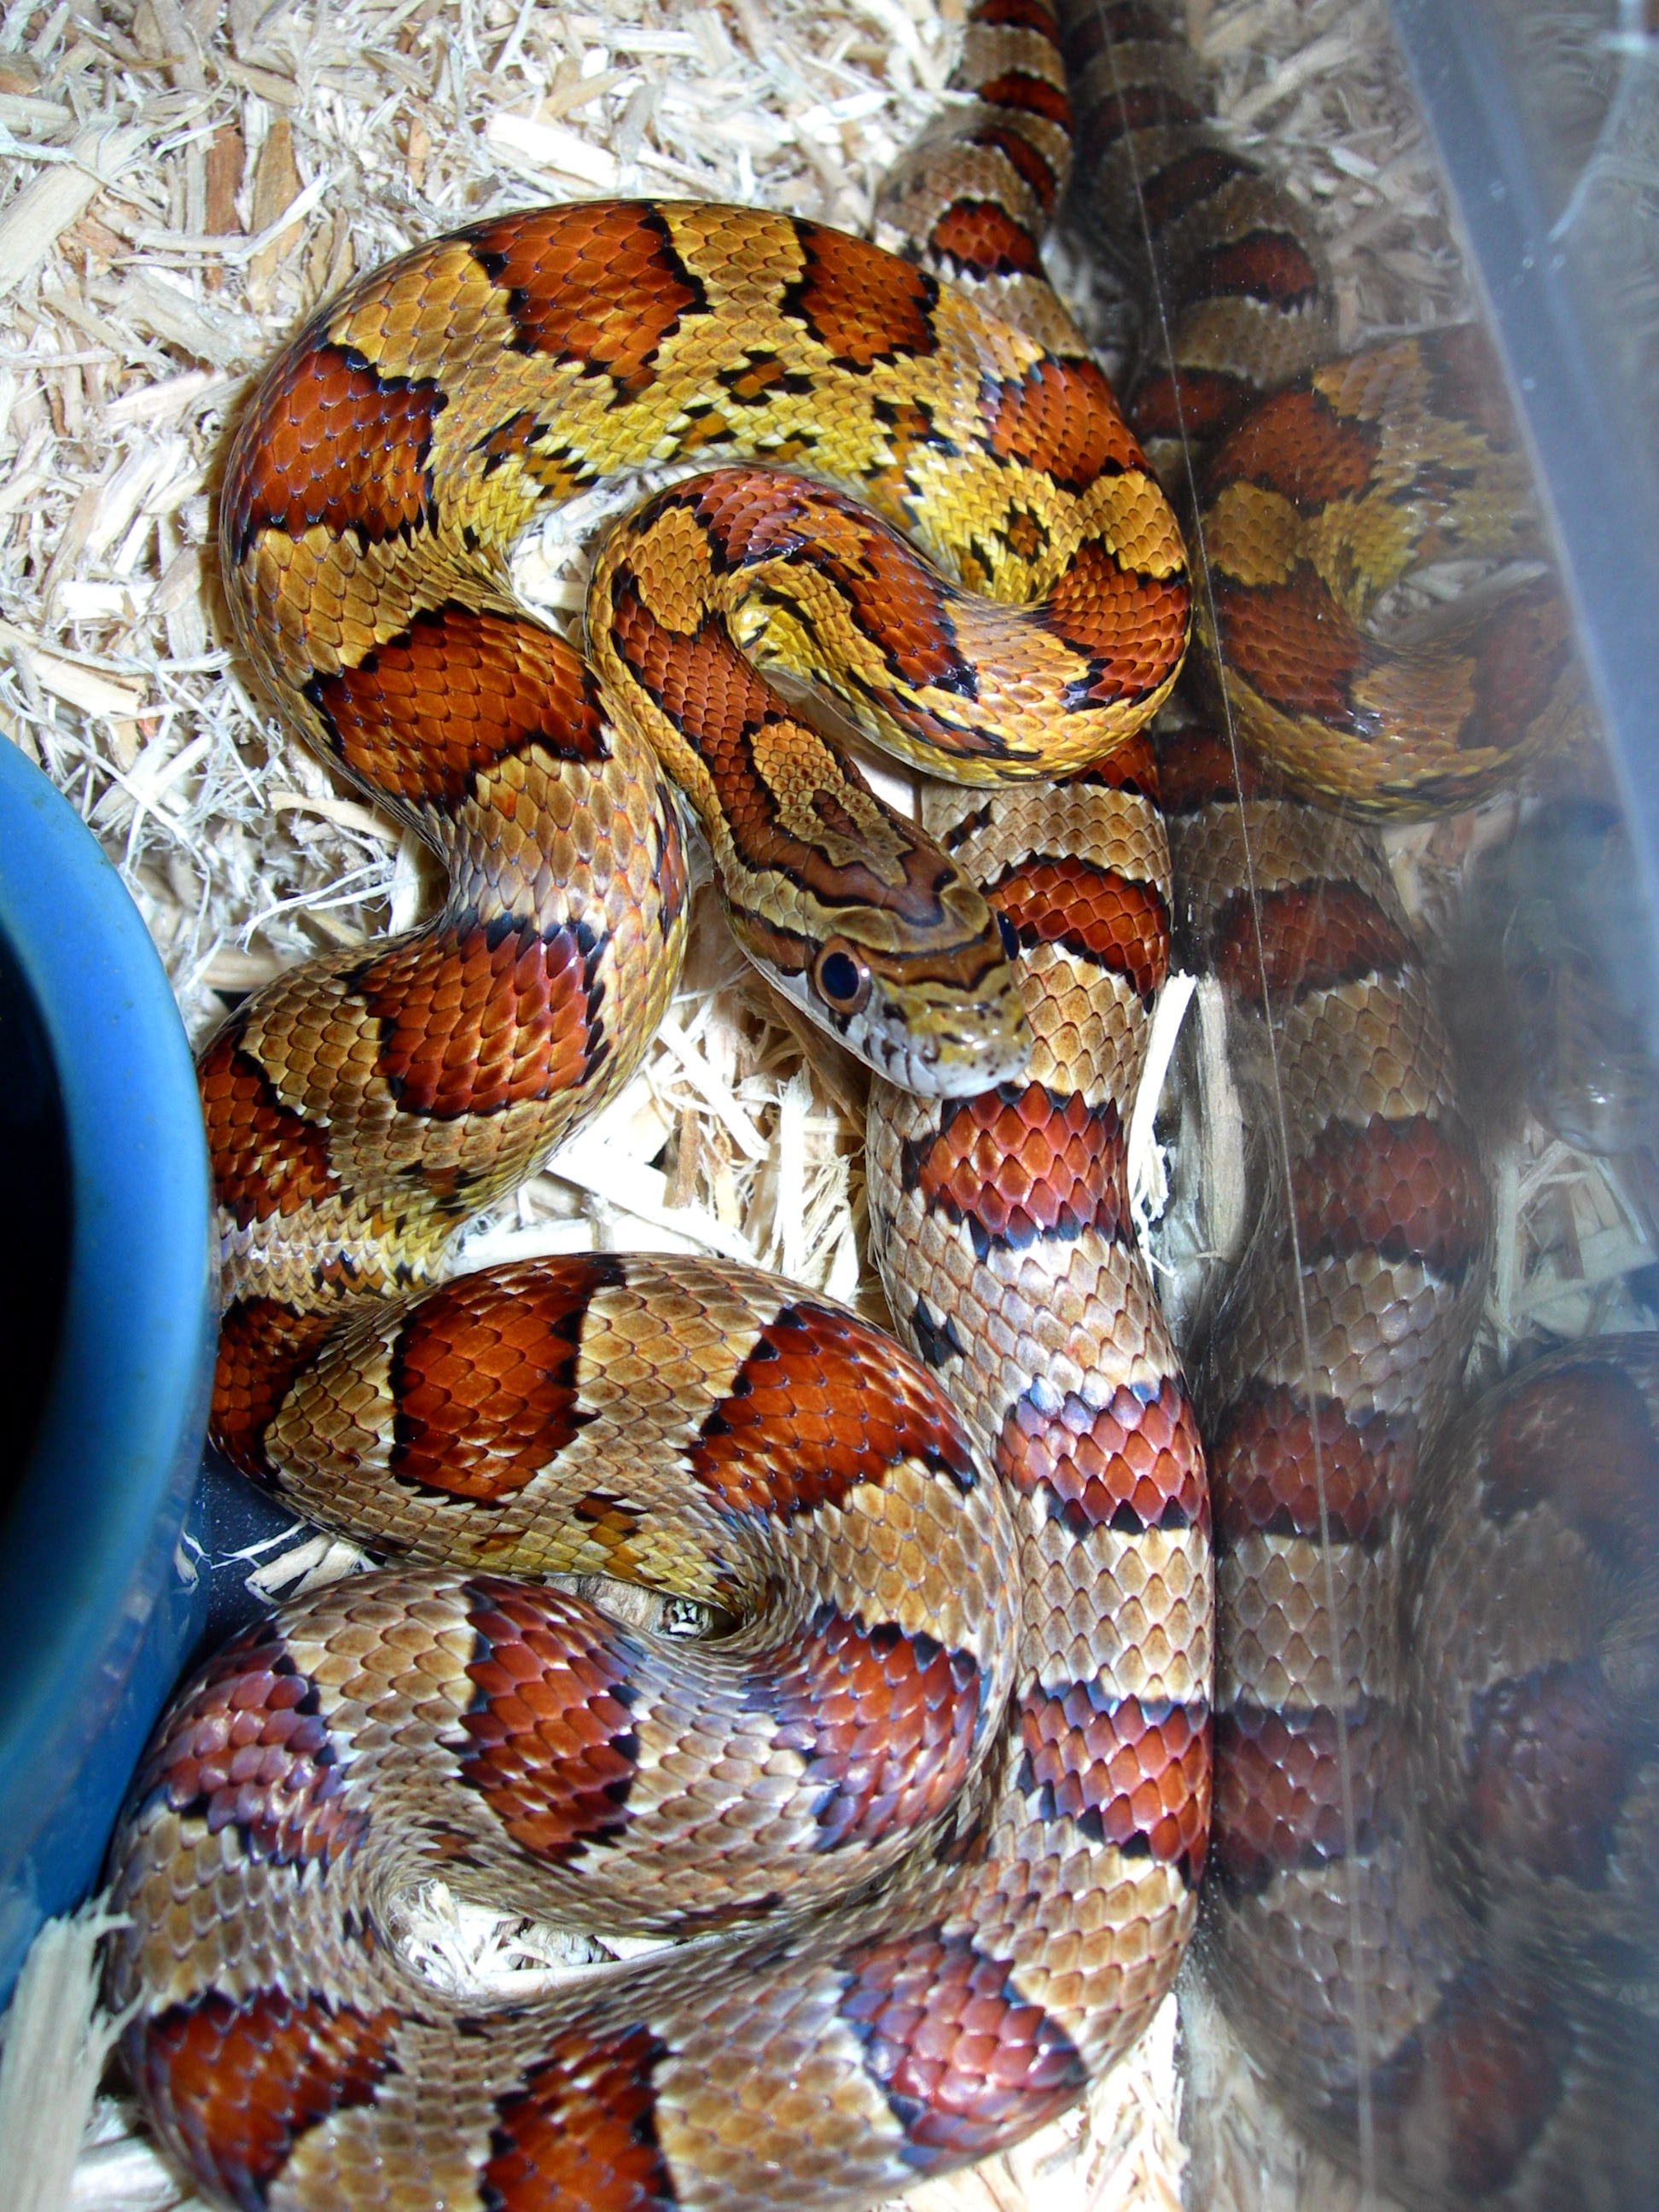 Dekalb County Alabama corn snake